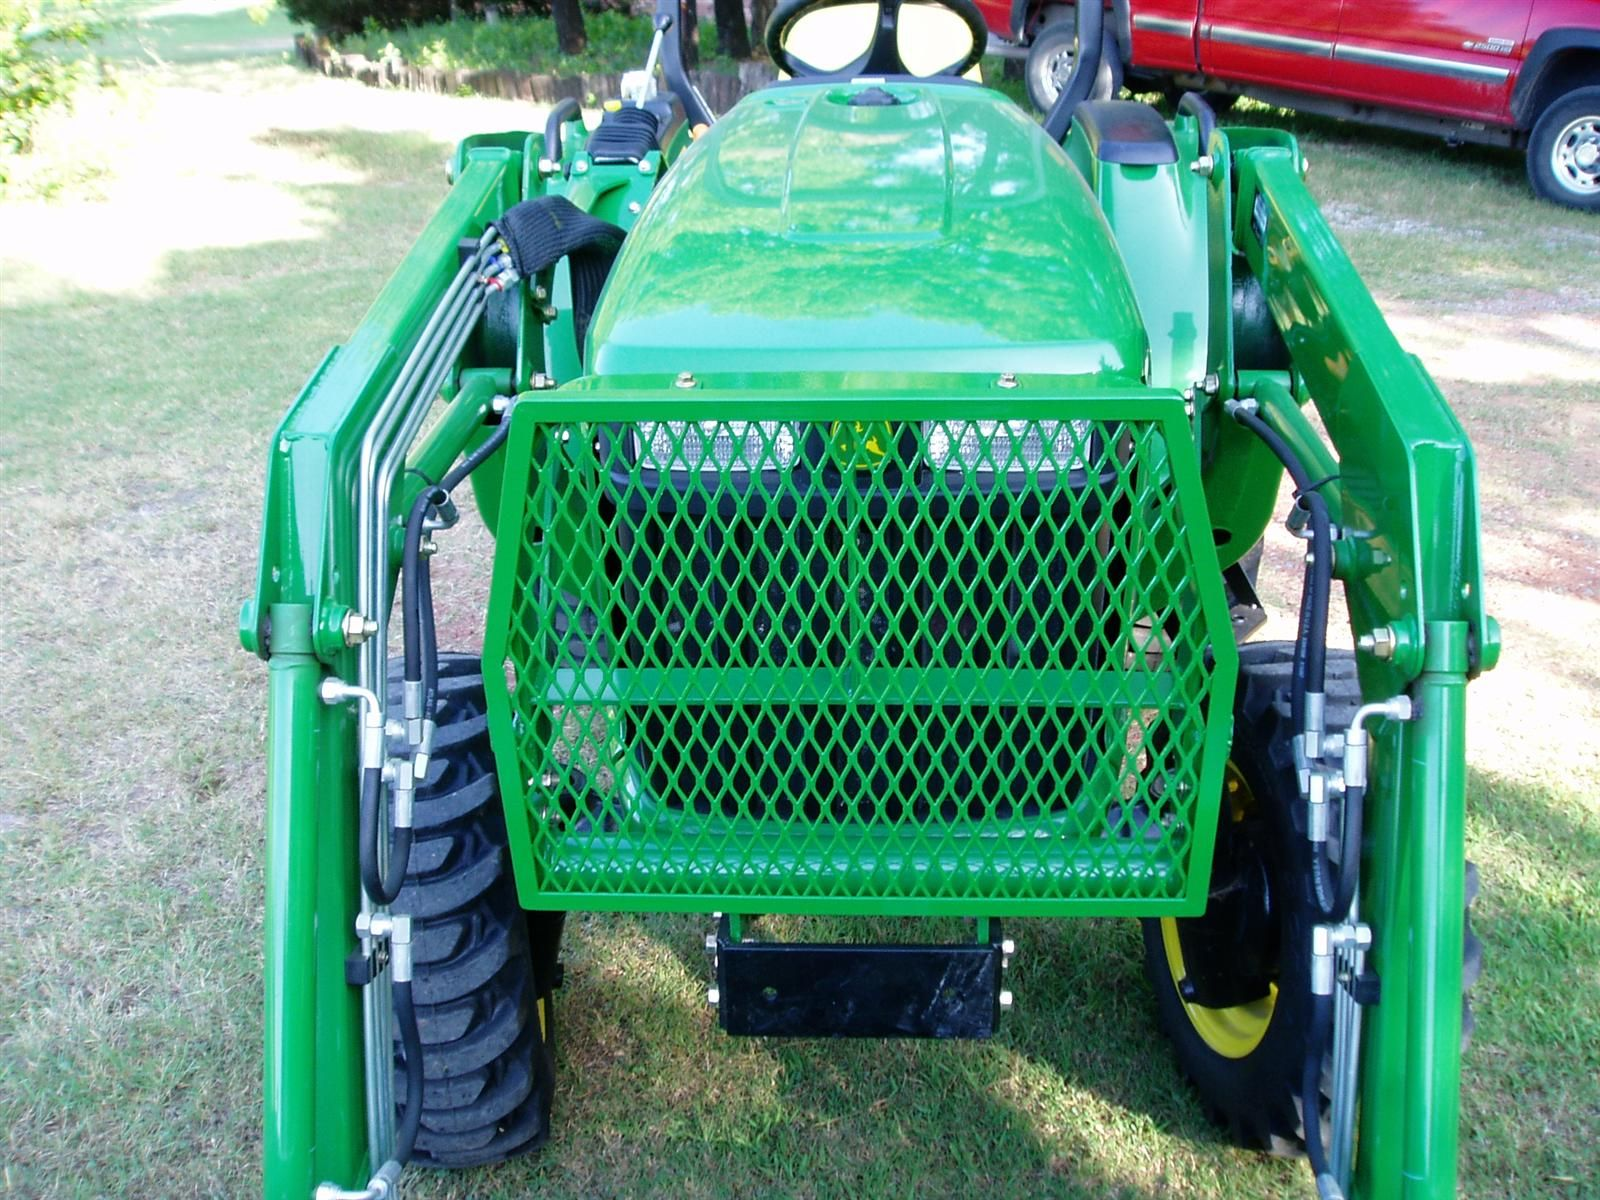 Garden Tractor Brush Guard : D  jd e brush guard bucket grille